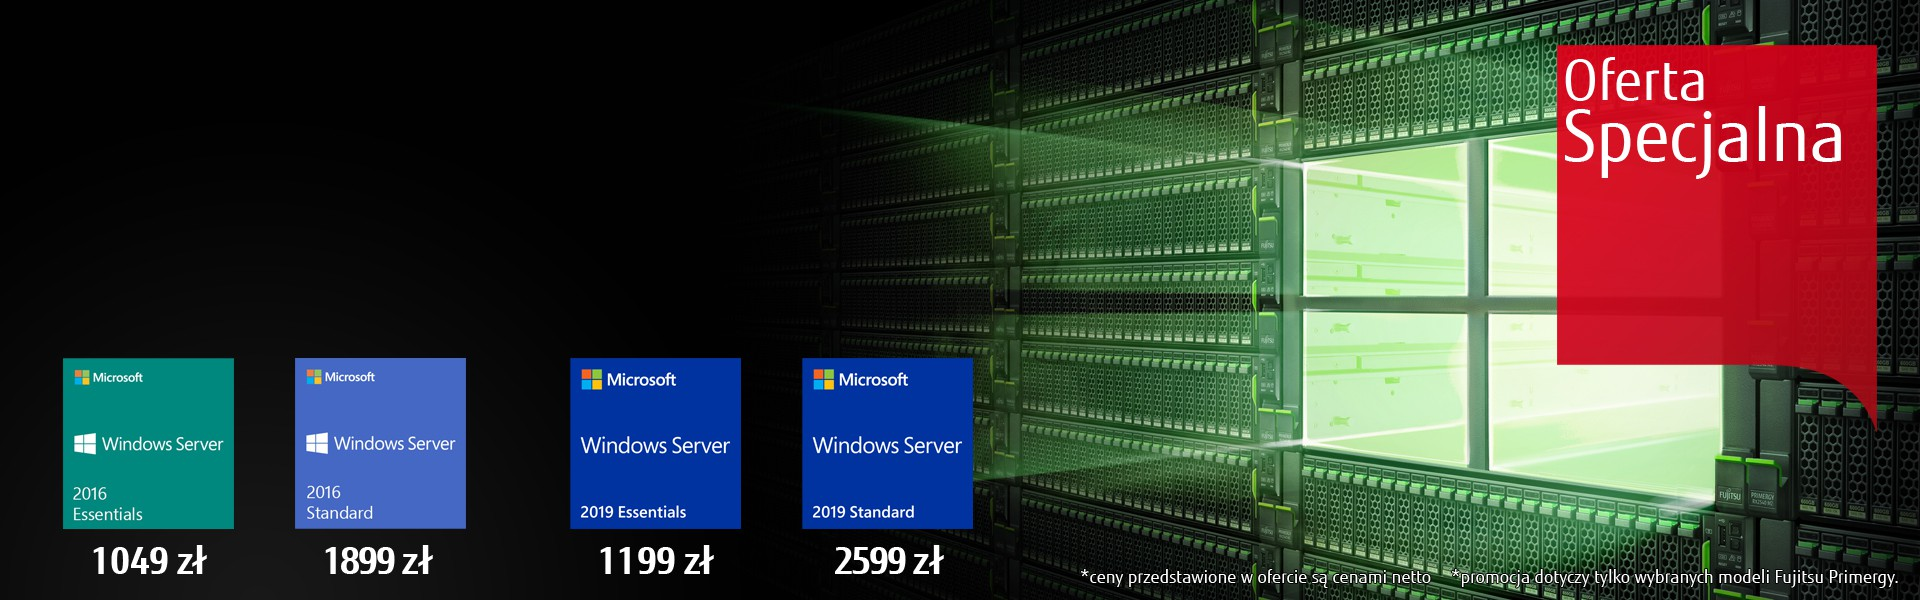 Windows Server 2016 & 2019